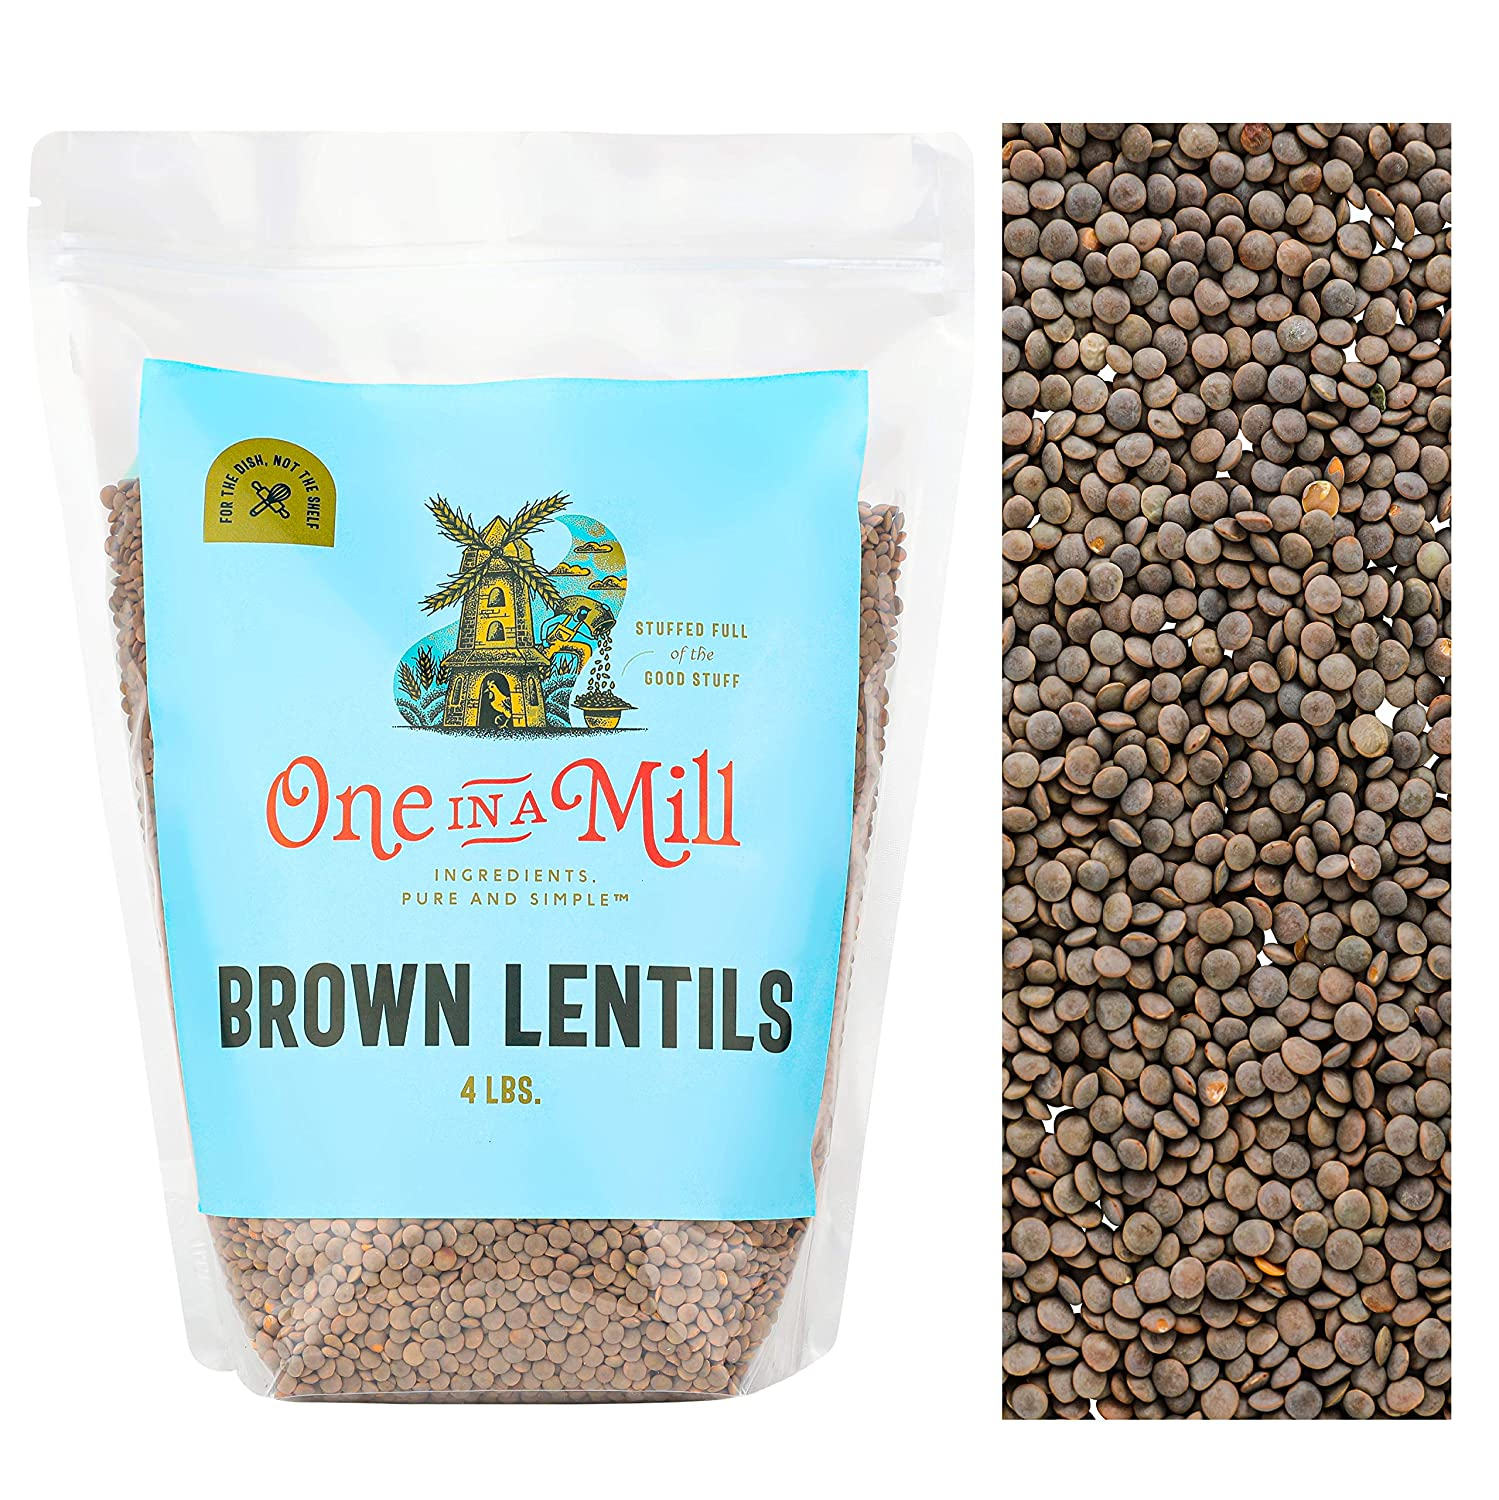 One in a Mill Whole Dried Brown Lentils 4lb Bulk Resealable Bag | All-Natural Plant-Based Protein for Soup, Chili & Curries | Non-Irradiated & Sproutable | Vegan Non-GMO, Gluten-Free, Certified Kosher